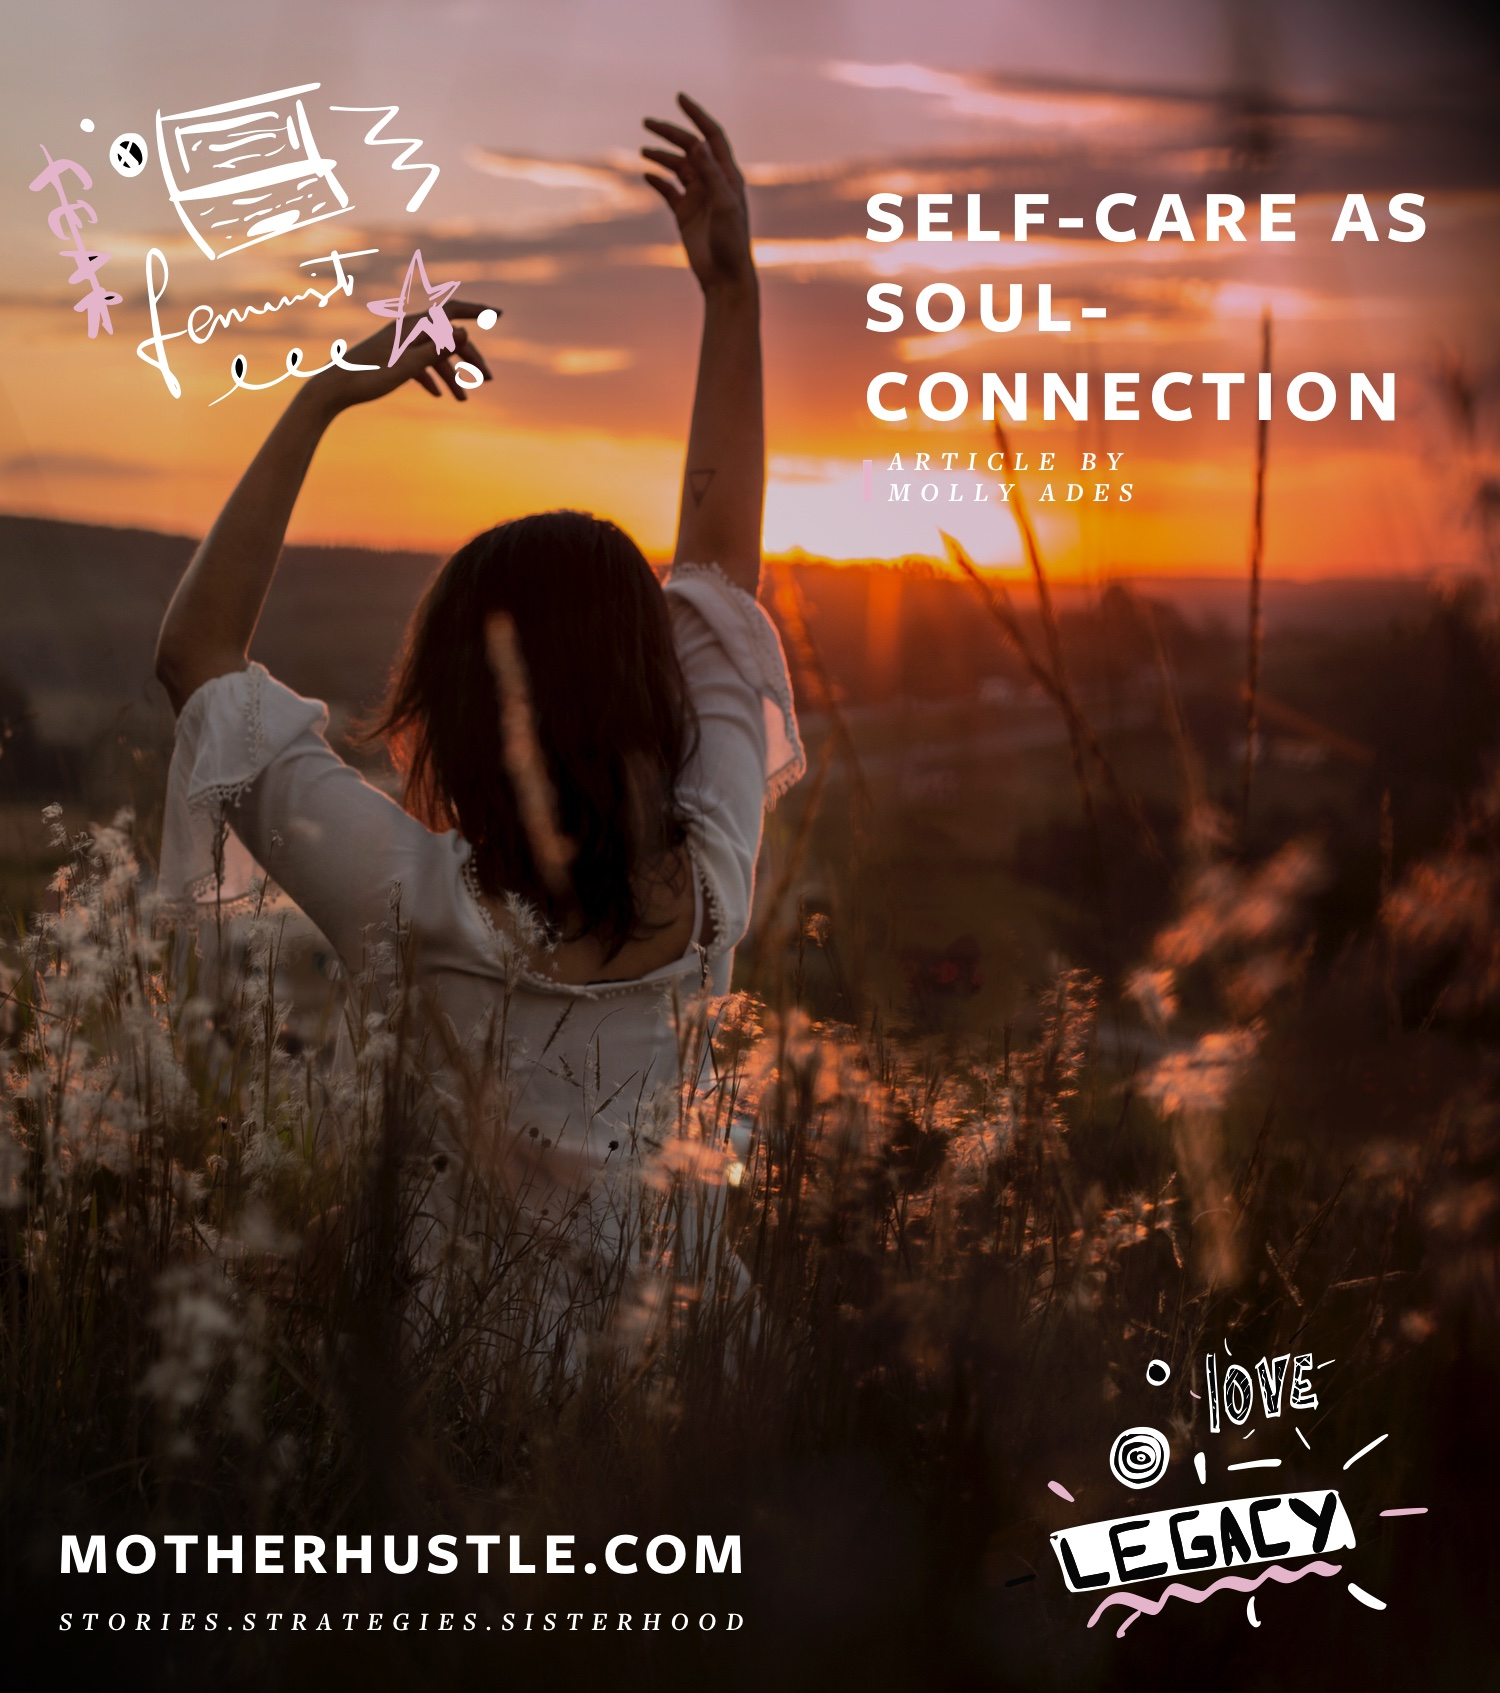 Self-Care-as-Soul-Connection-by-Molly-Ades-for-MotherHustle.jpg